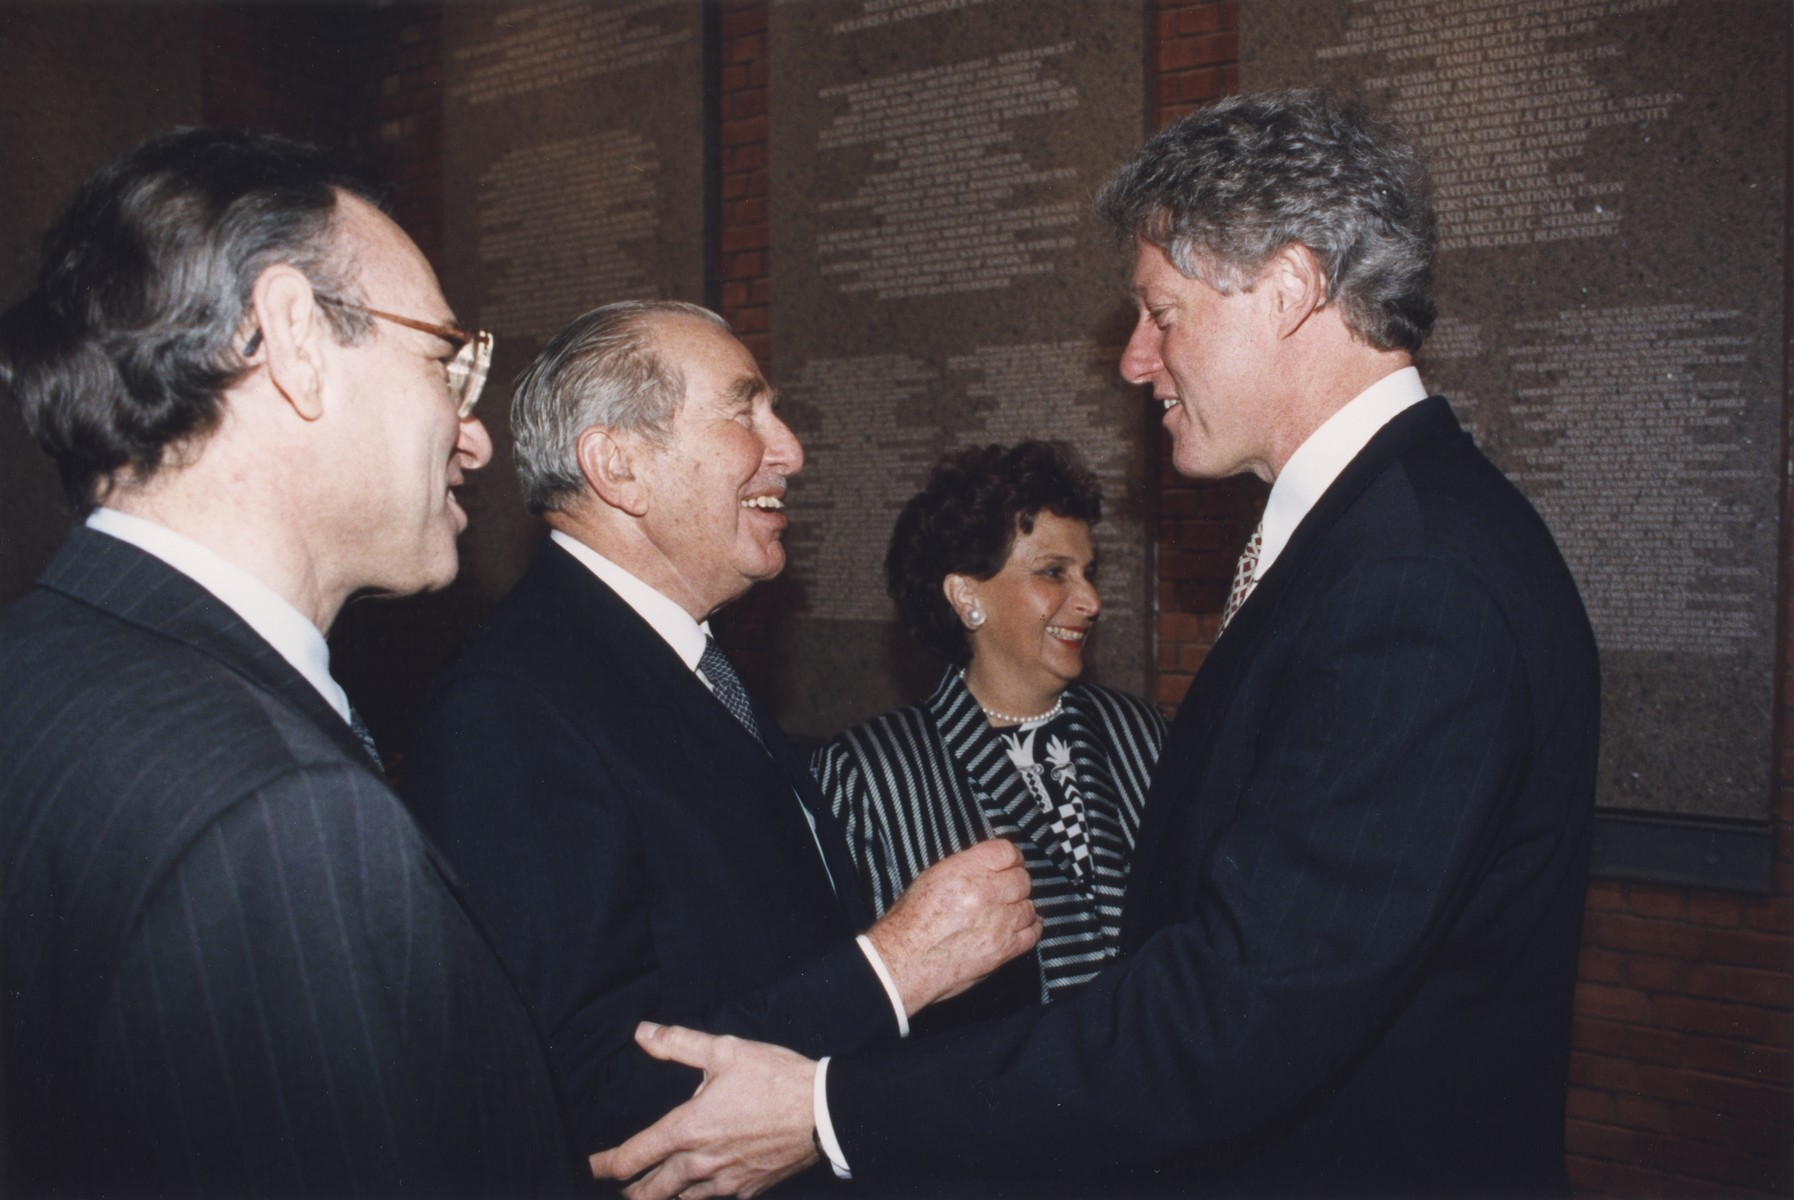 President William Clinton greet Israeli President Chaim Herzog and his wife at the opening of the U.S. Holocaust Memorial Museum.